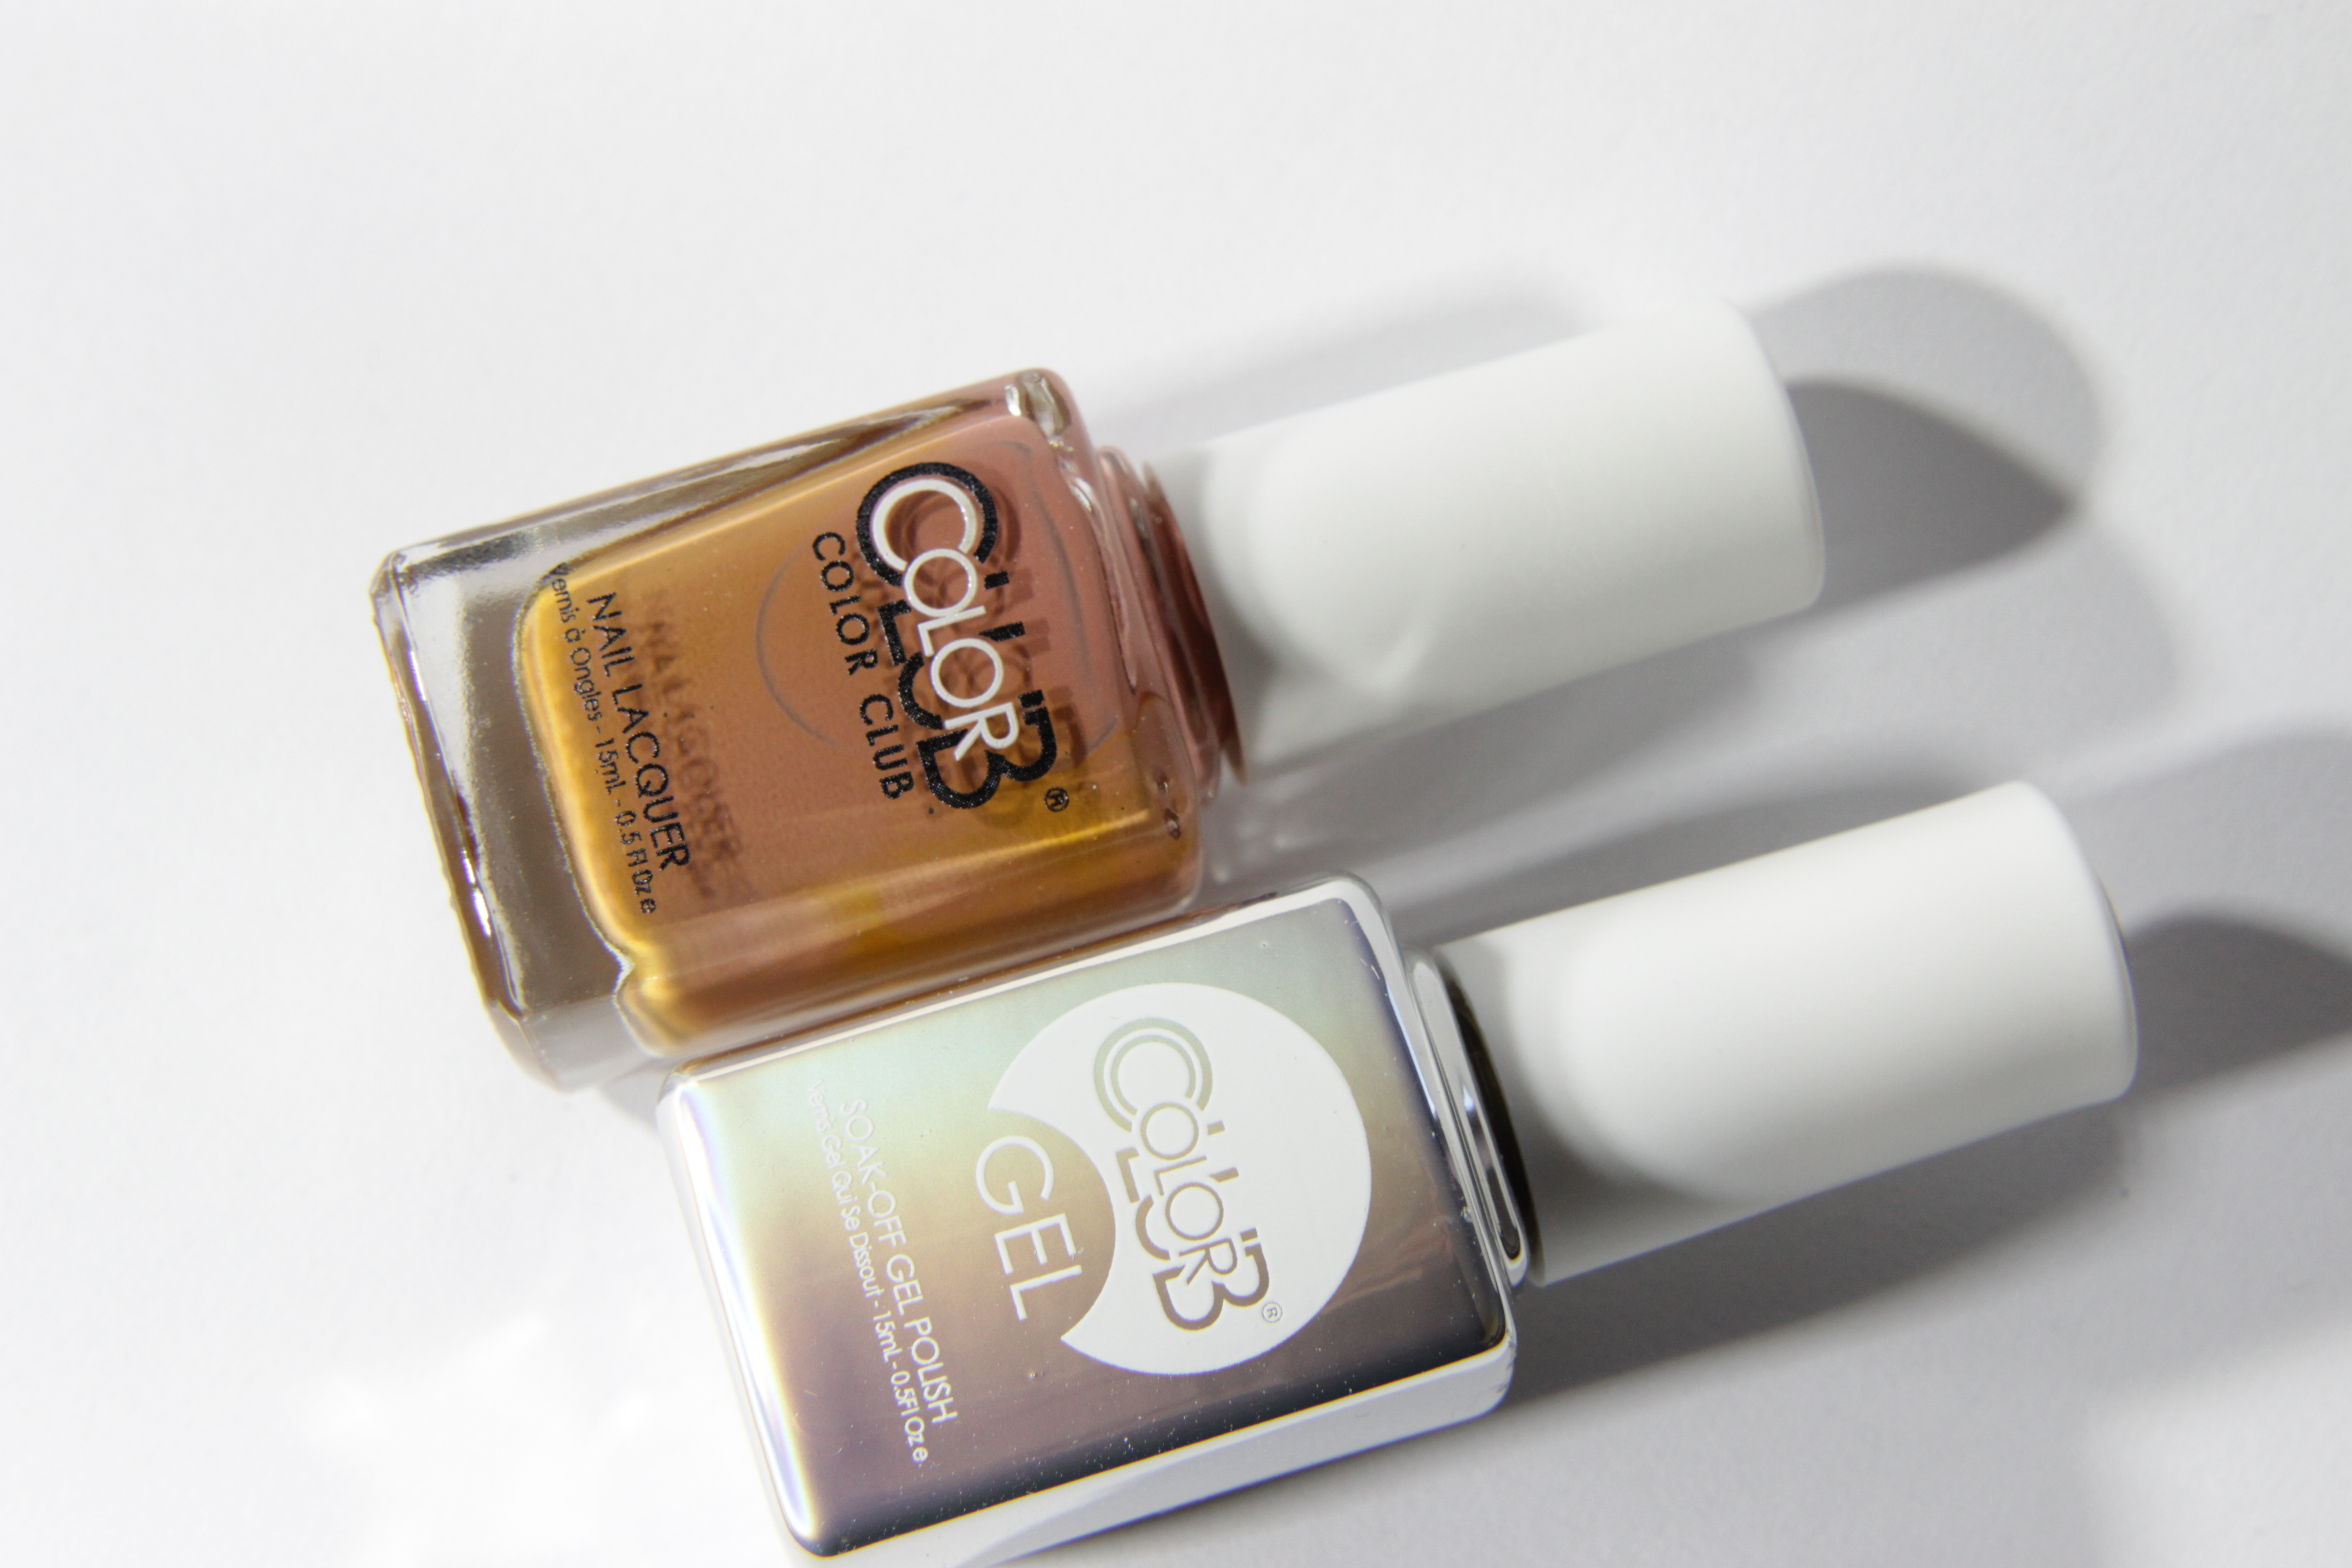 #0882 BEST DRESSED LIST Color Club Duo Nagellack Nail Lacquer and Soak-Off Gel Polish braun brown